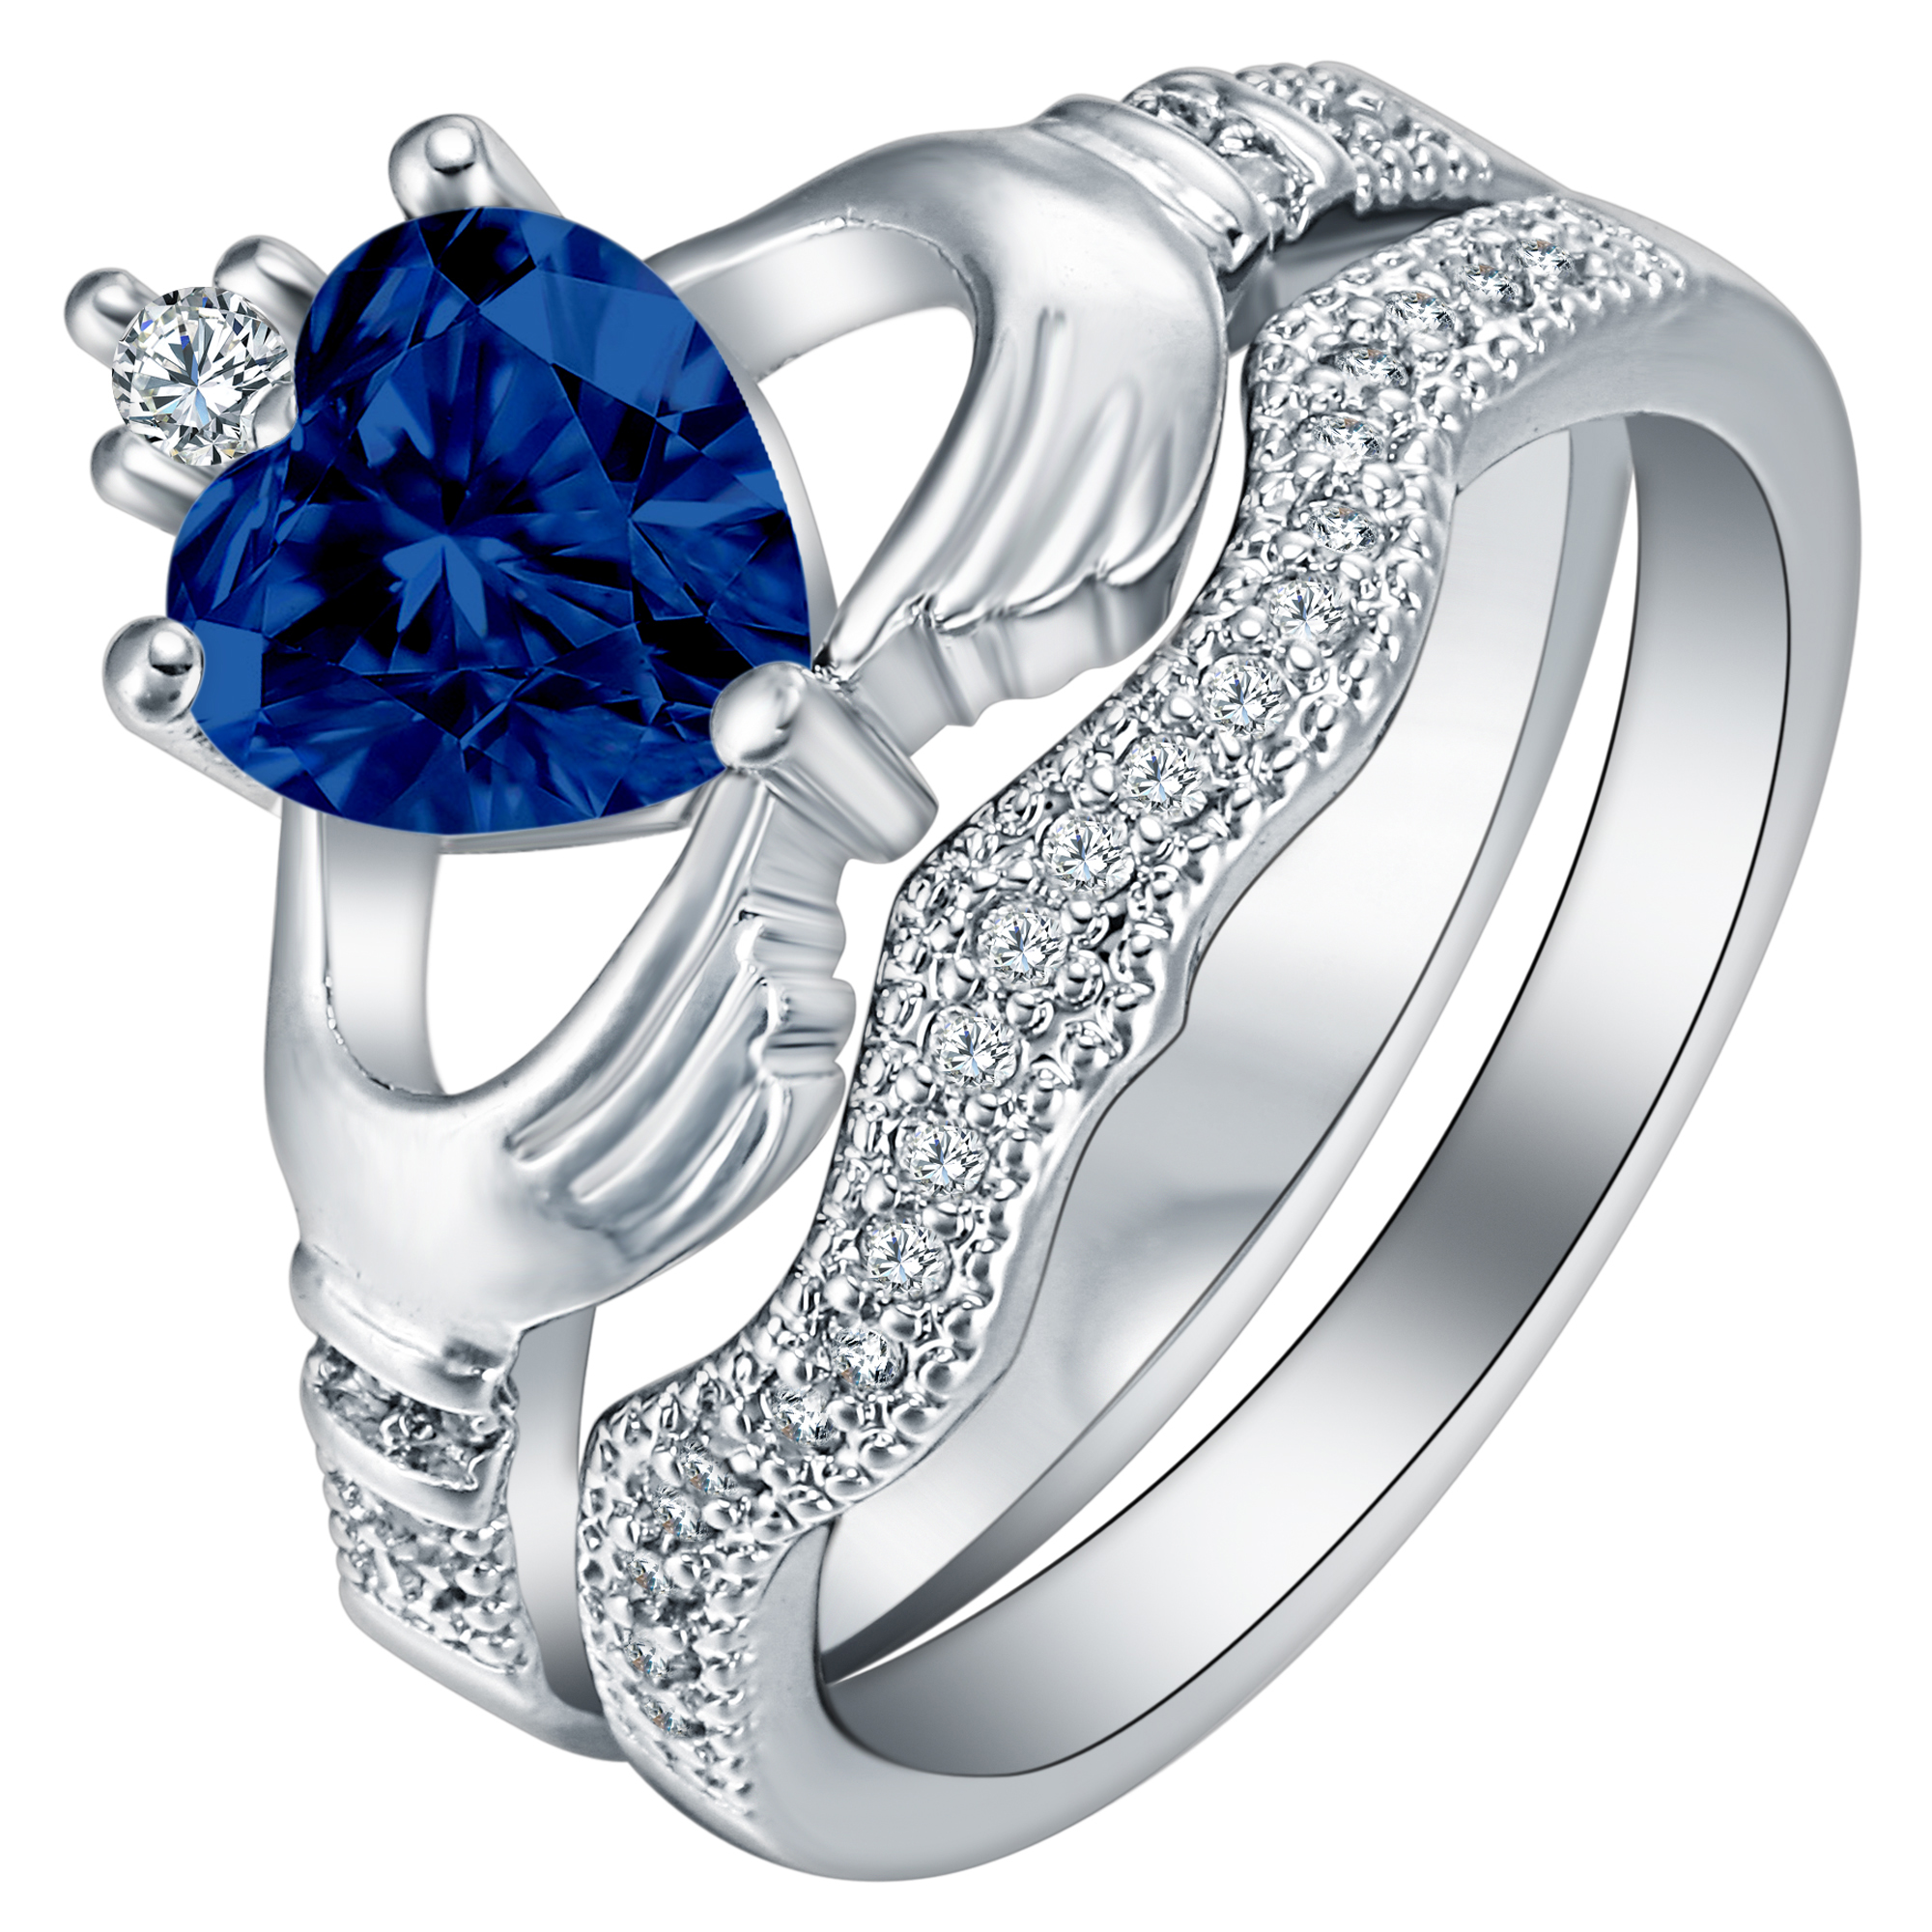 engagement royal different alternative astey unique rings blue and bazaar uk news clarke brides unusual